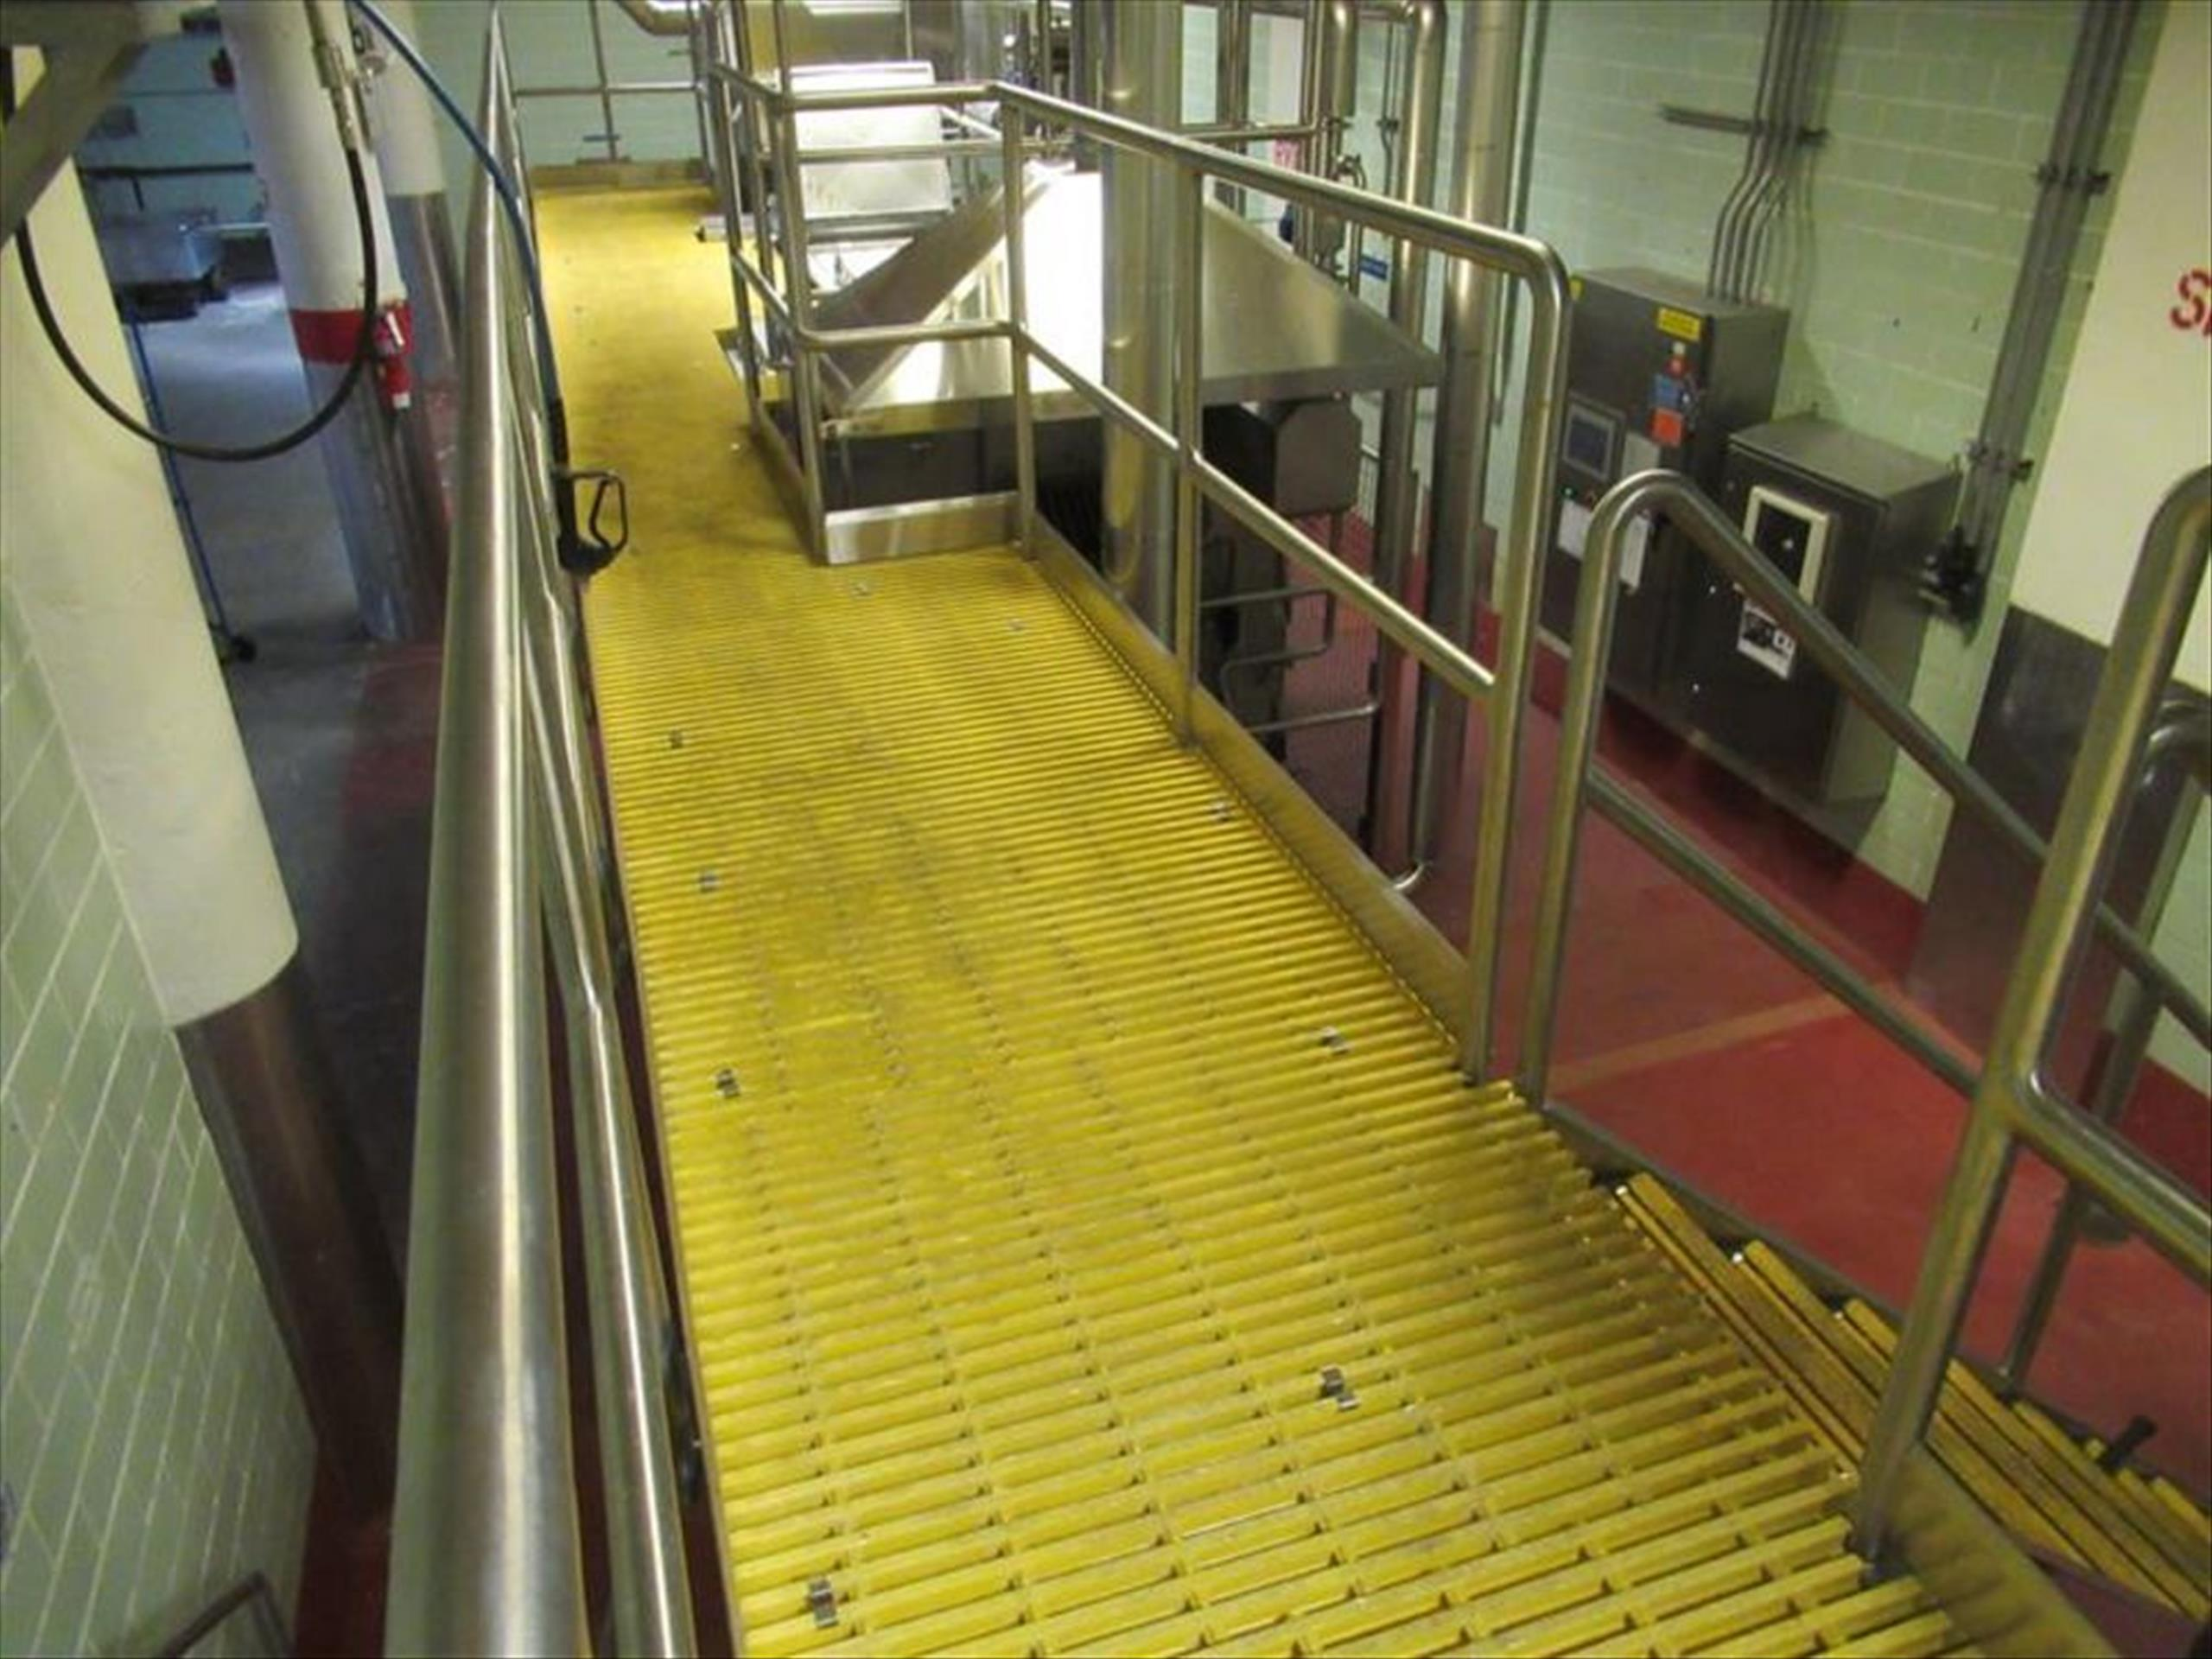 Blancher inspection platform with (2) 10 steps stairways, Hd stainless framing and safety rails, - Image 3 of 4